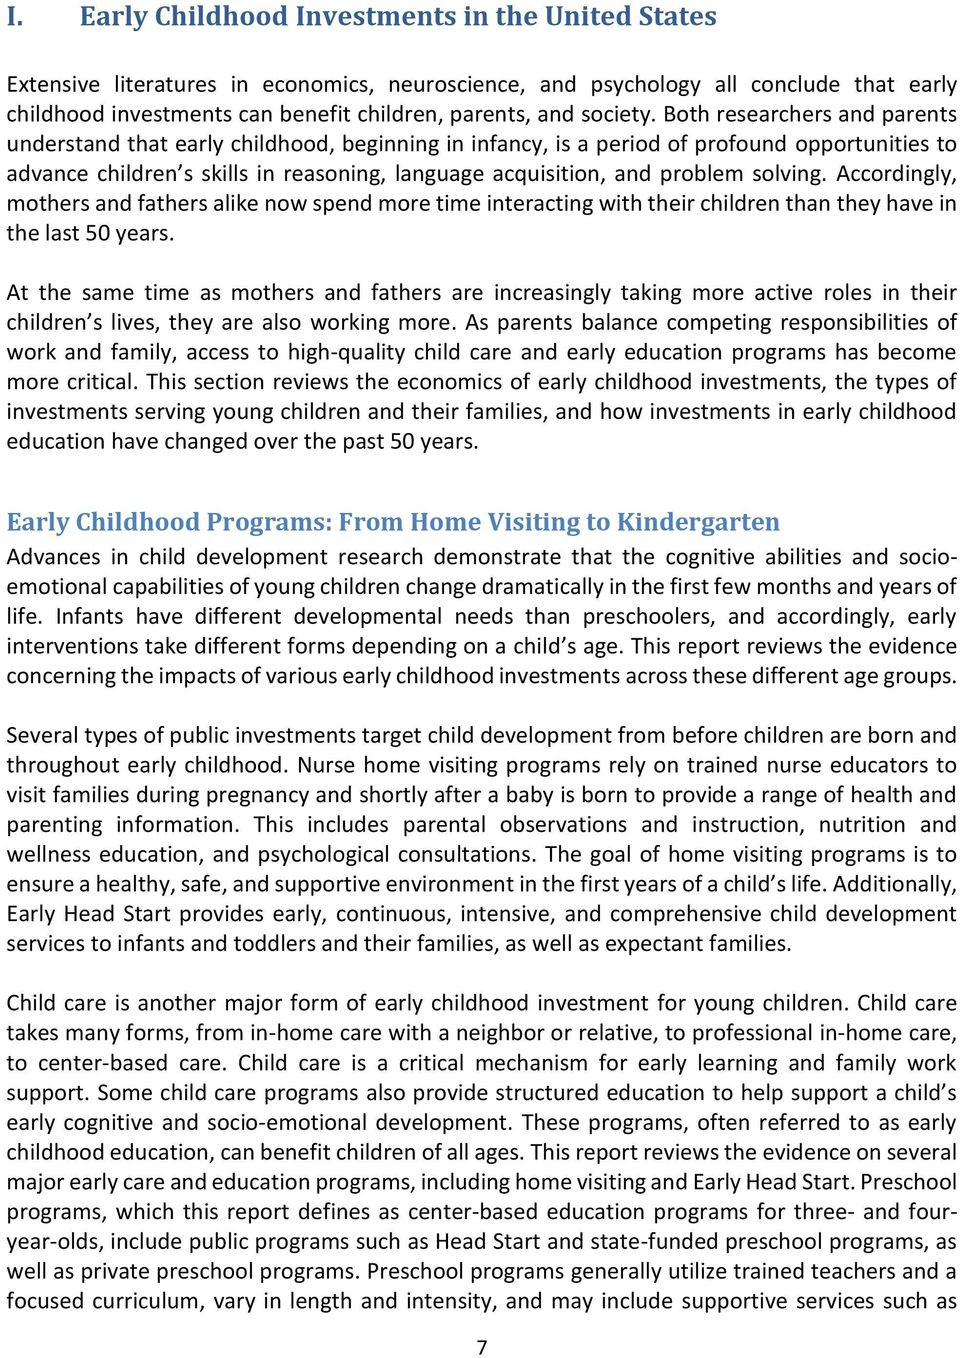 Both researchers and parents understand that early childhood, beginning in infancy, is a period of profound opportunities to advance children s skills in reasoning, language acquisition, and problem